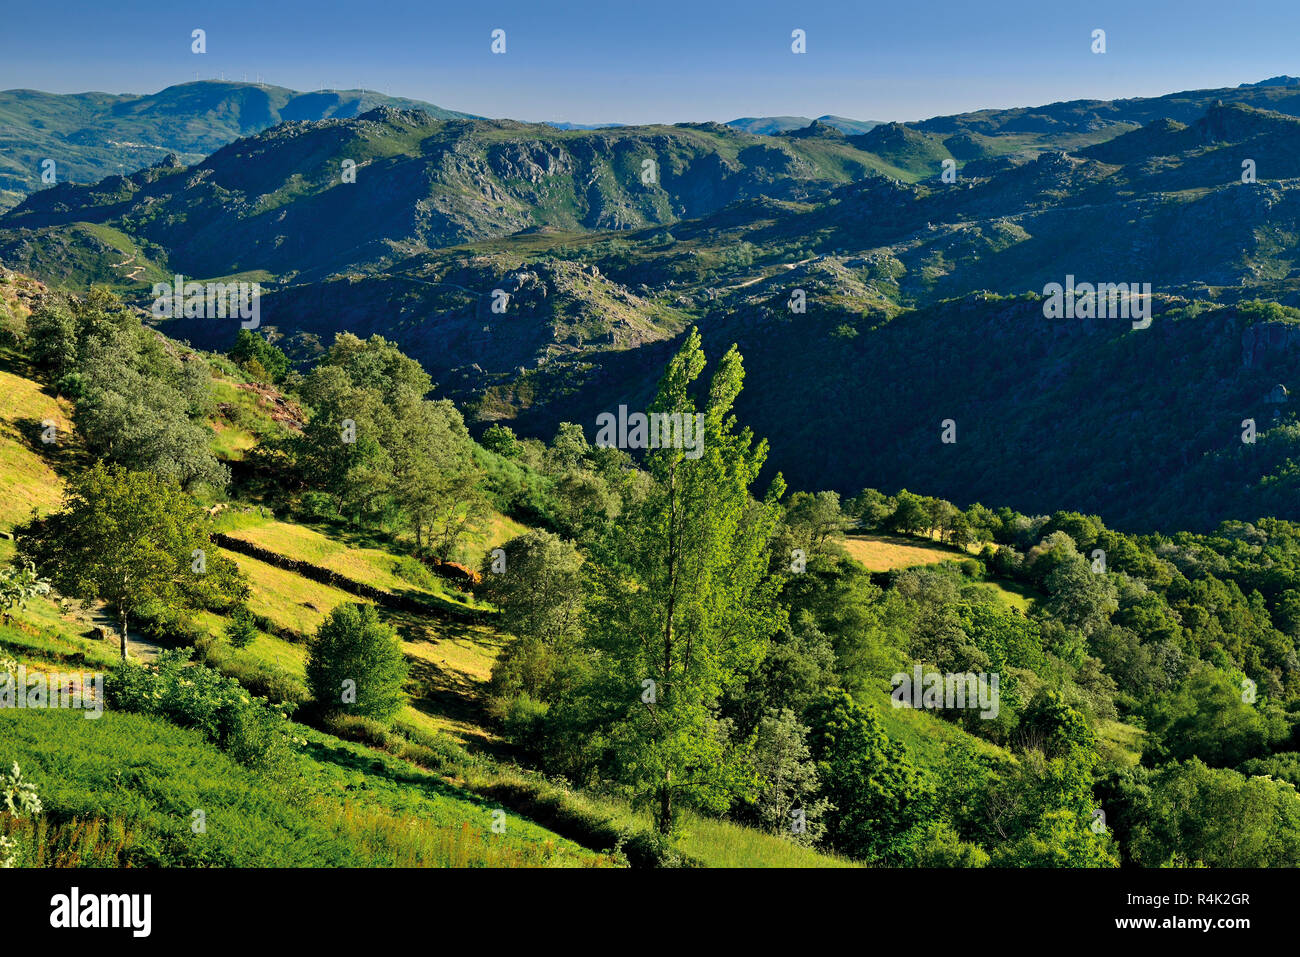 View of a green mountain landscape - Stock Image